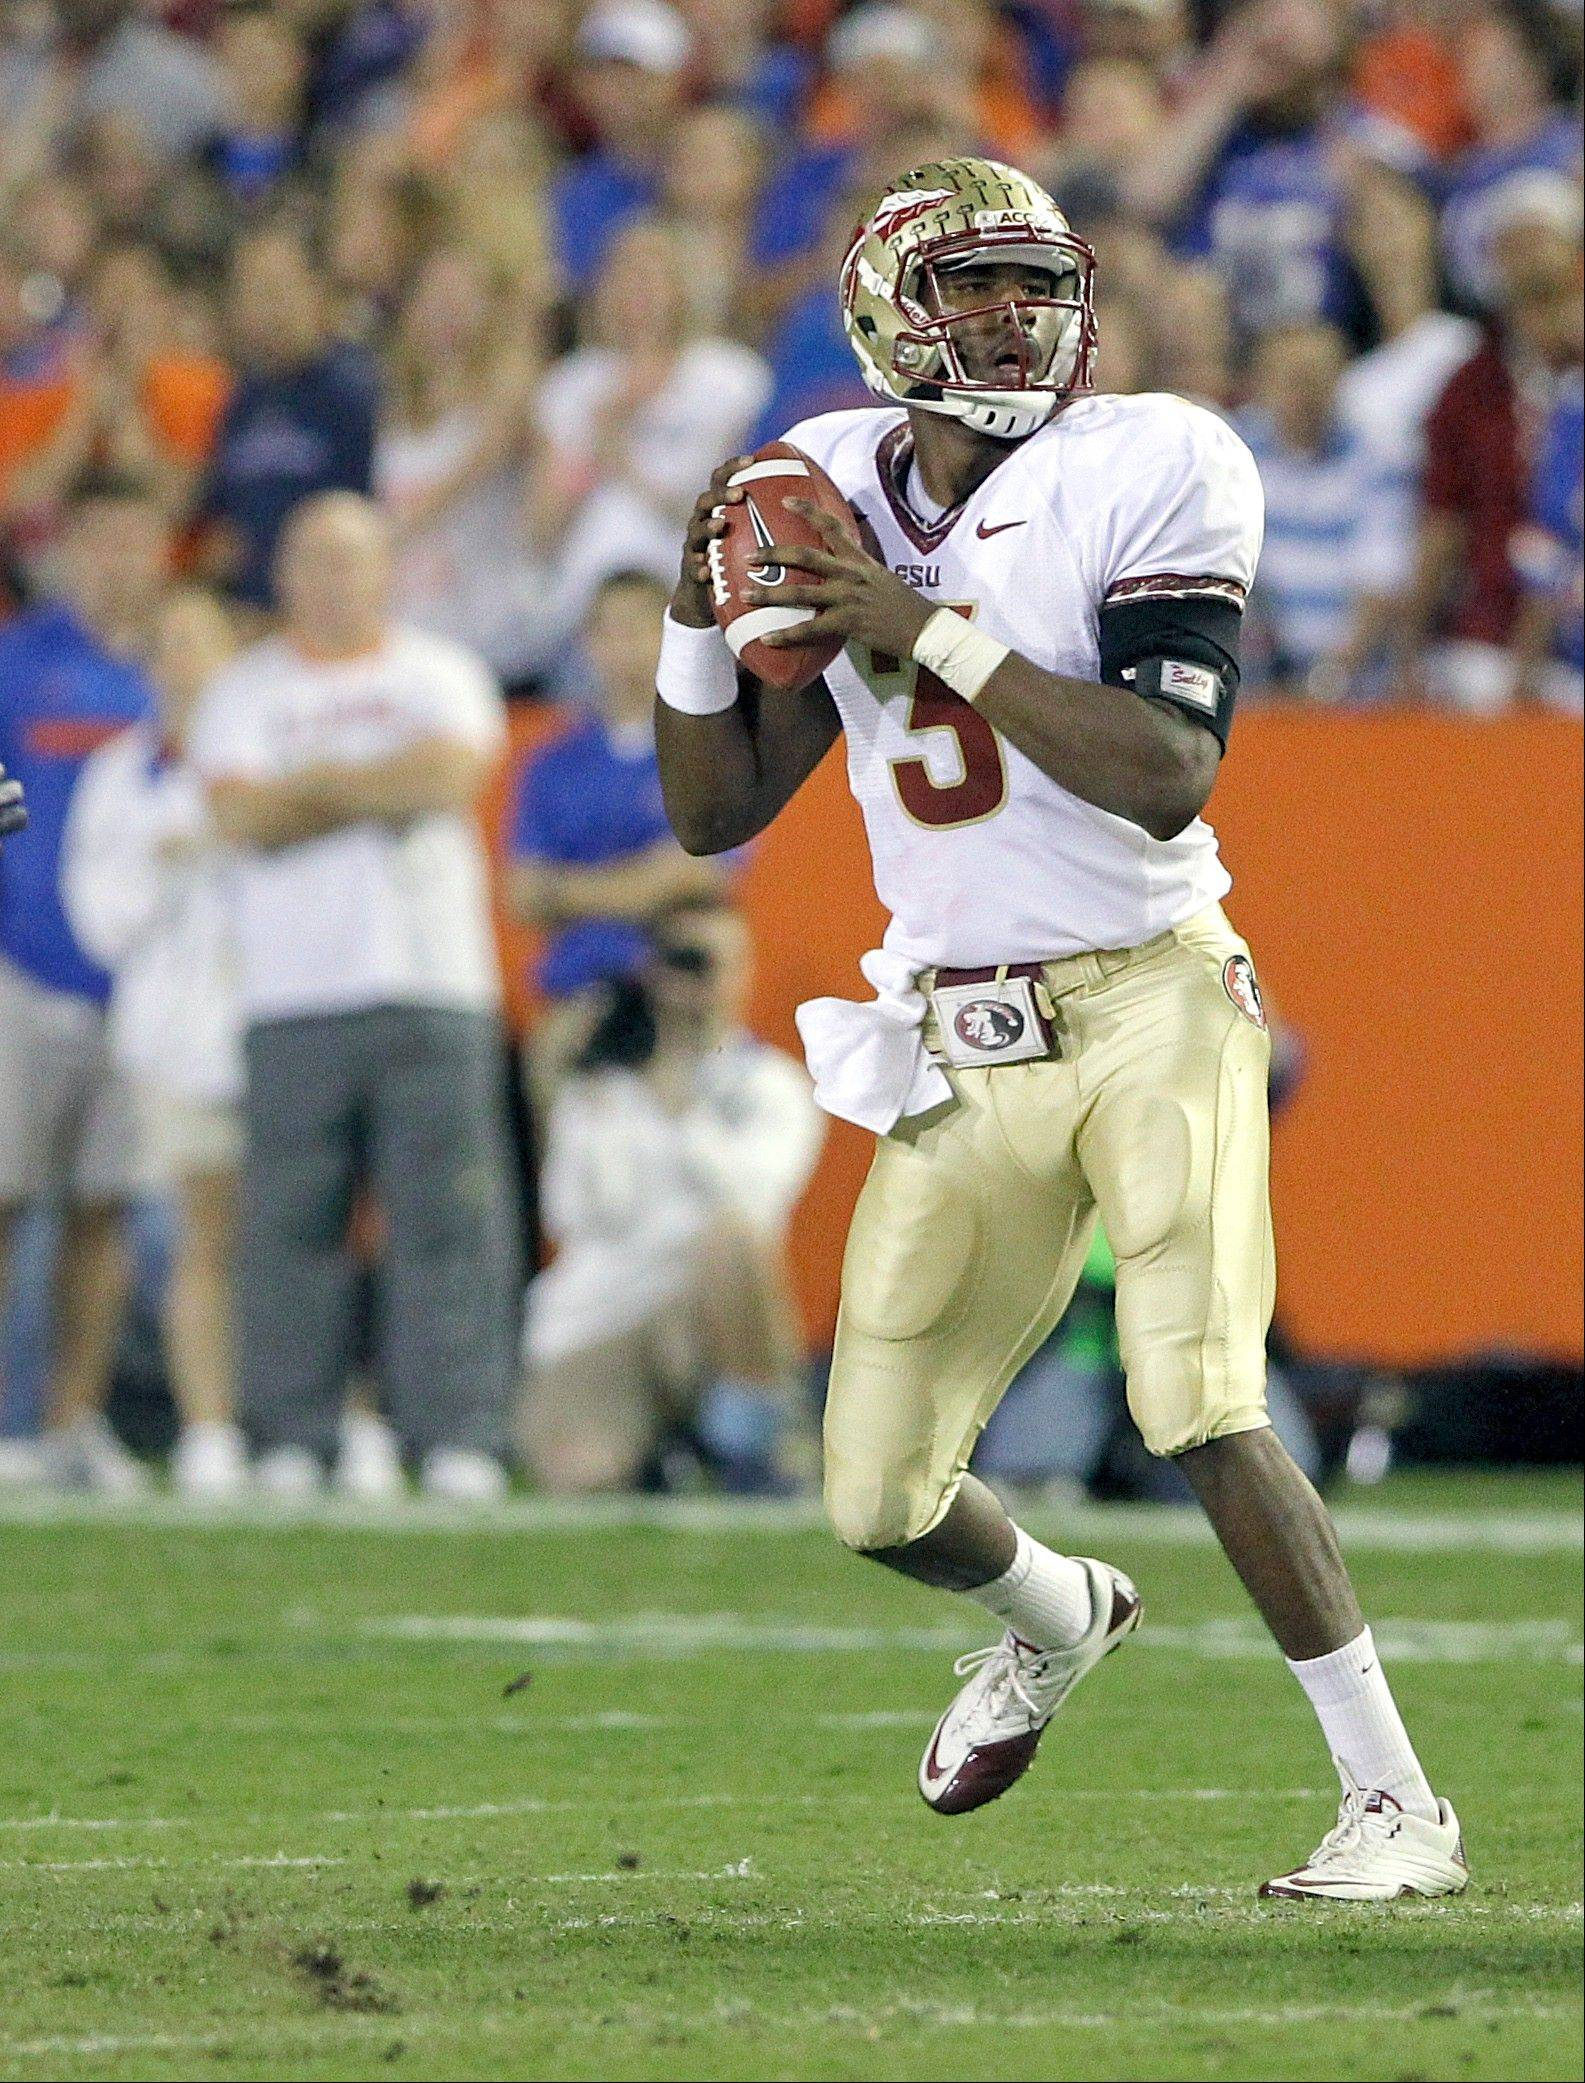 Challenging year for FSU's quarterback